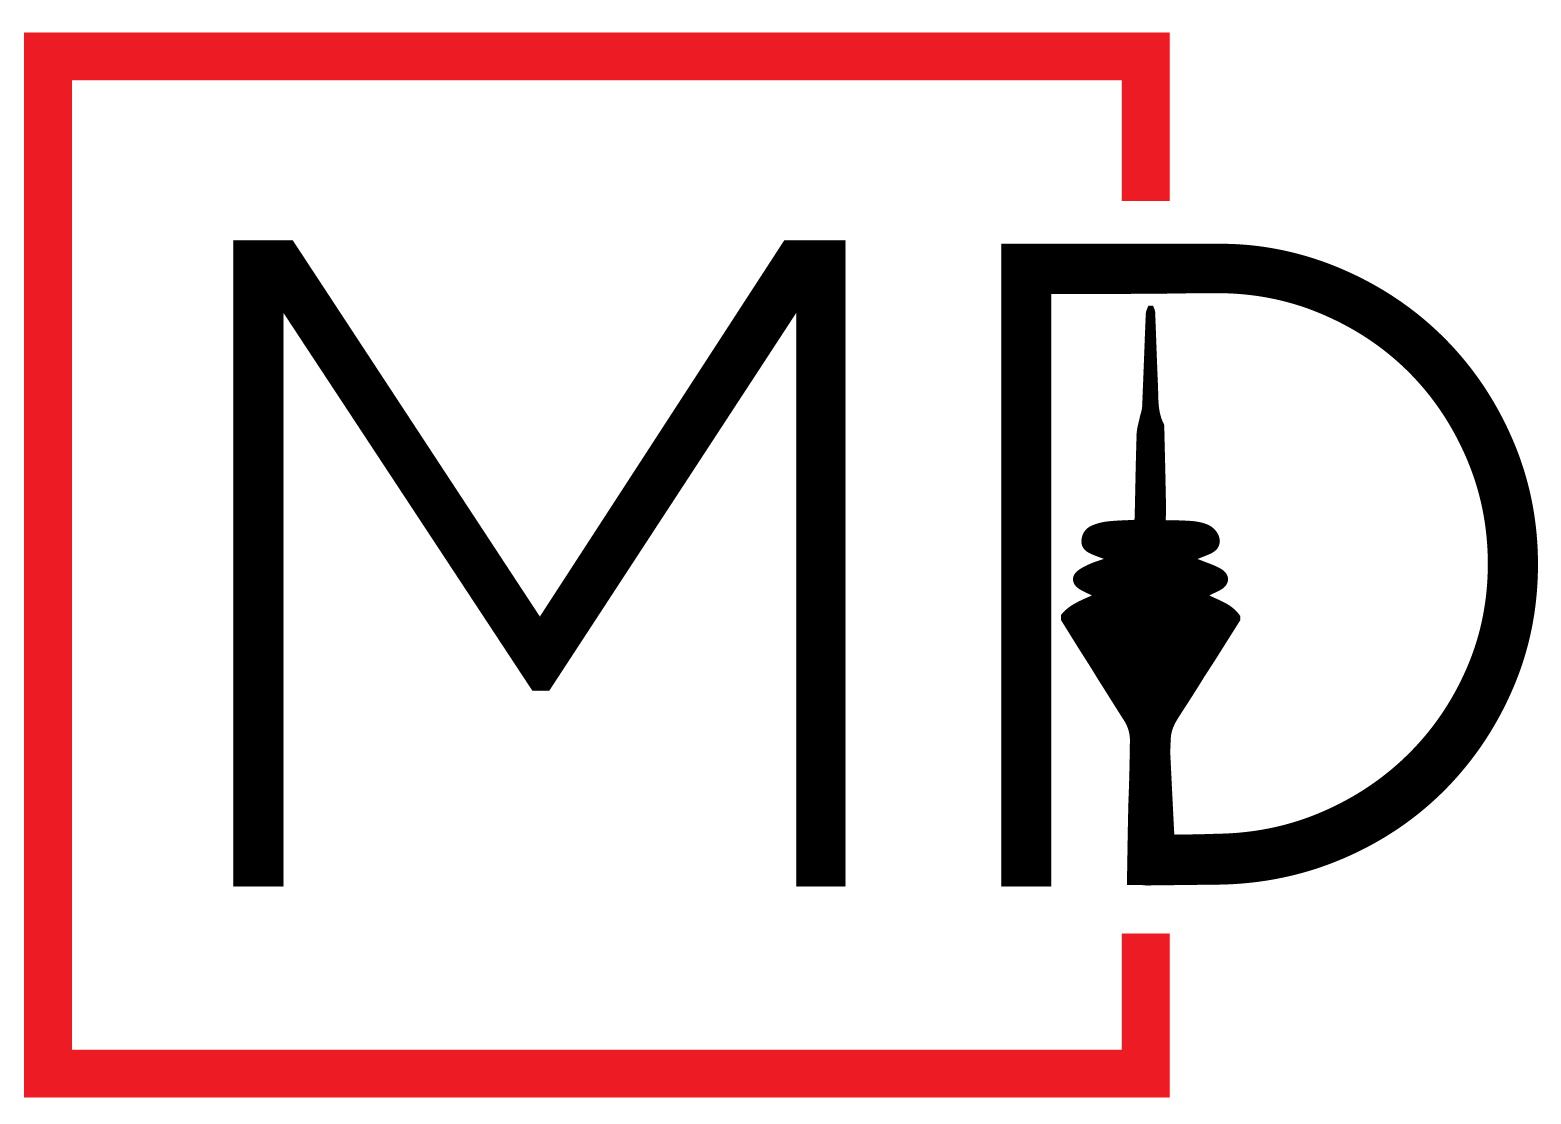 Max-D.de - Medienagentur |